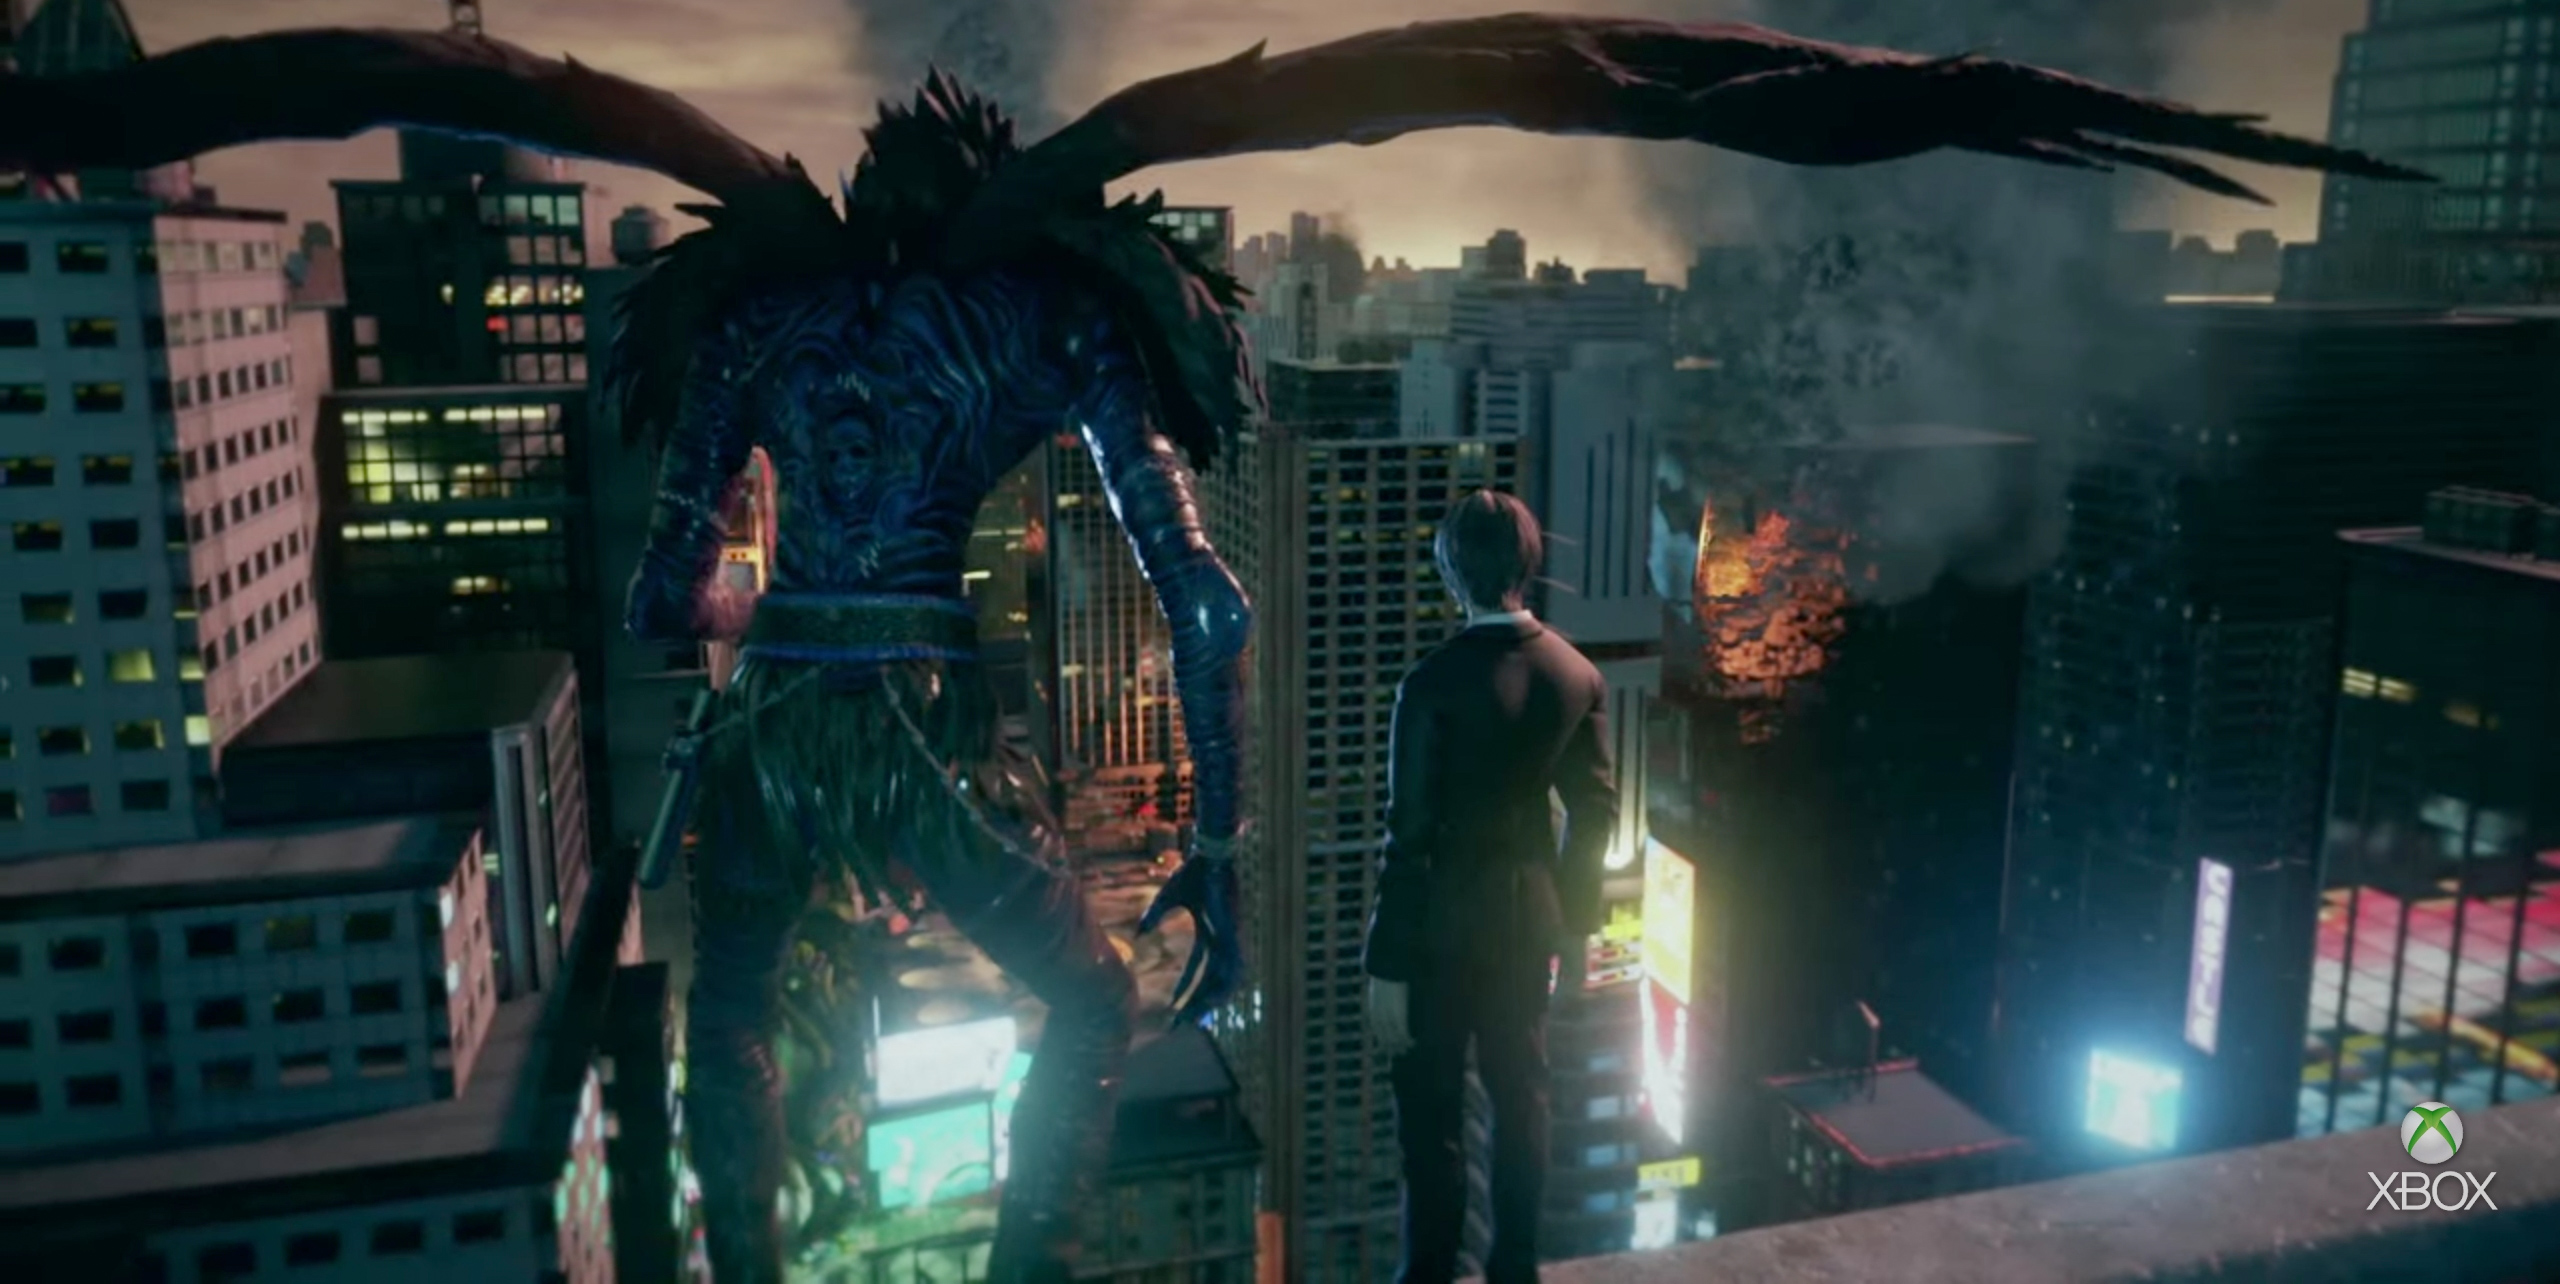 download jump force on android and ios devices